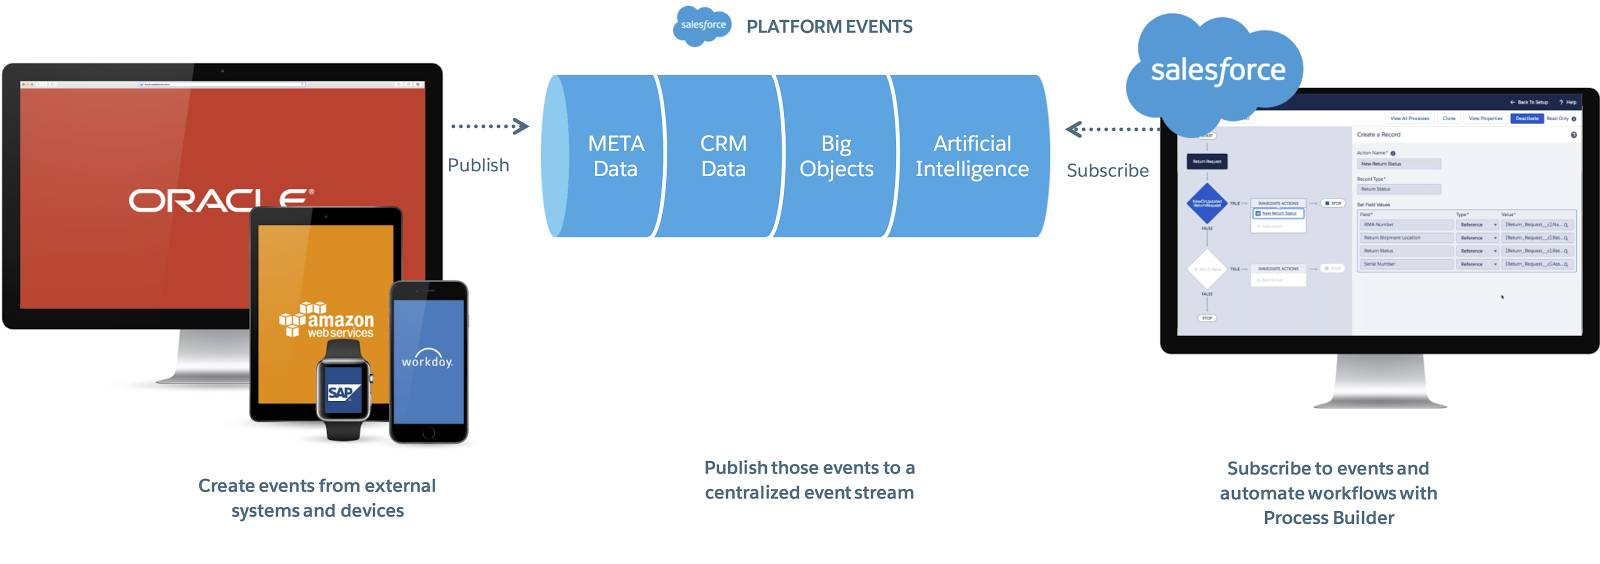 An infographic showing how Salesforce responds to events, starting with external systems such as AWS and SAP and flowing to a central event stream, at which point you can subscribe to events in Salesforce and use them to automate processes